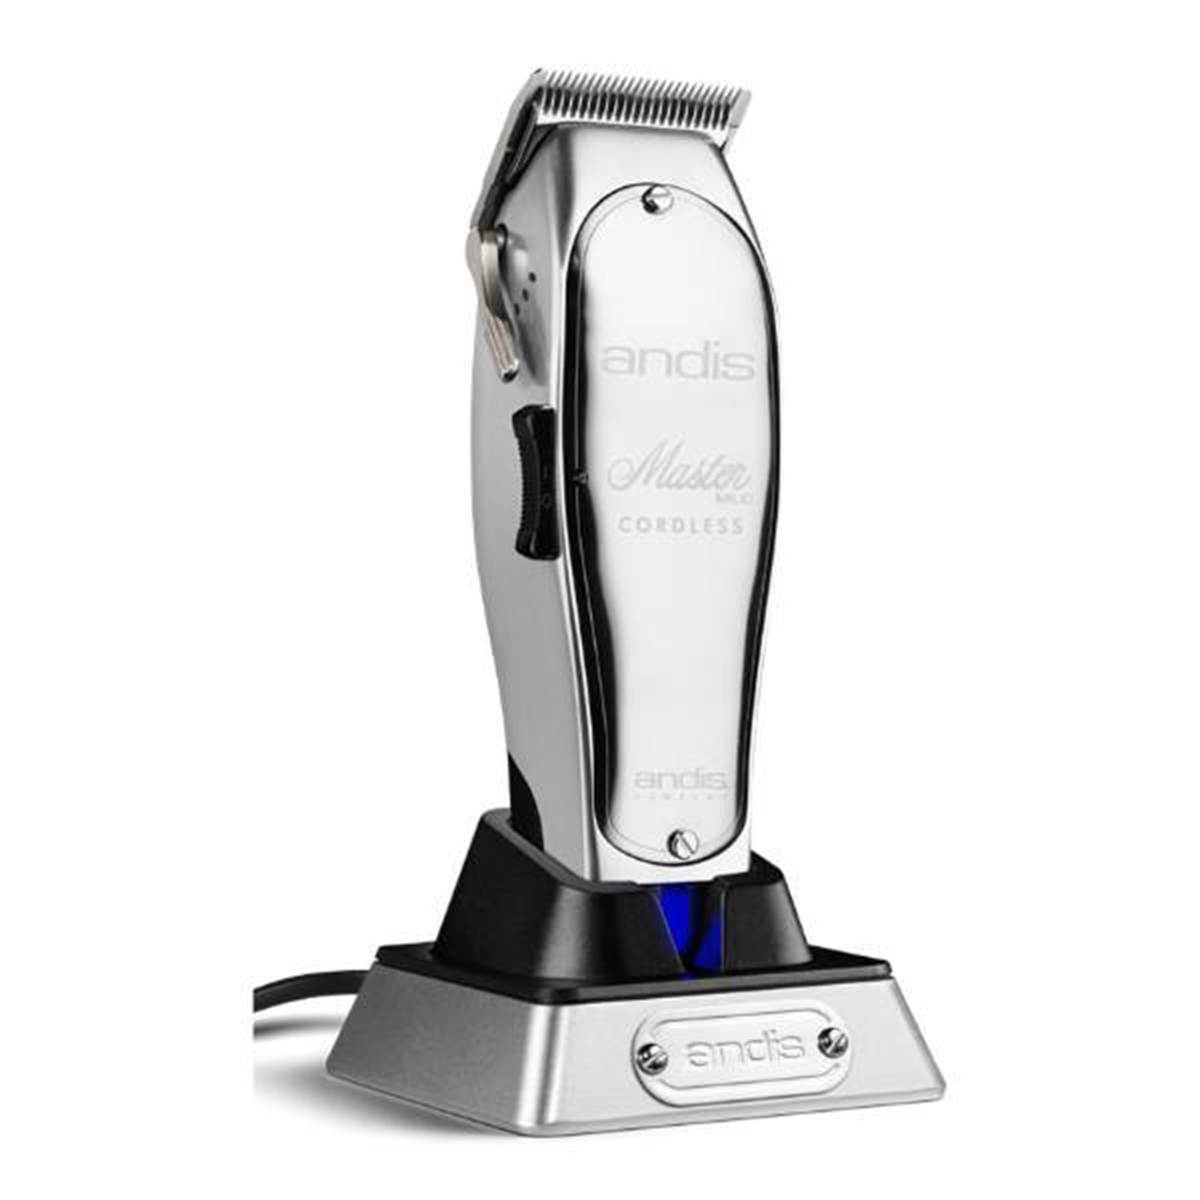 Picture of Andis Master Cordless Lithium Ion Clipper